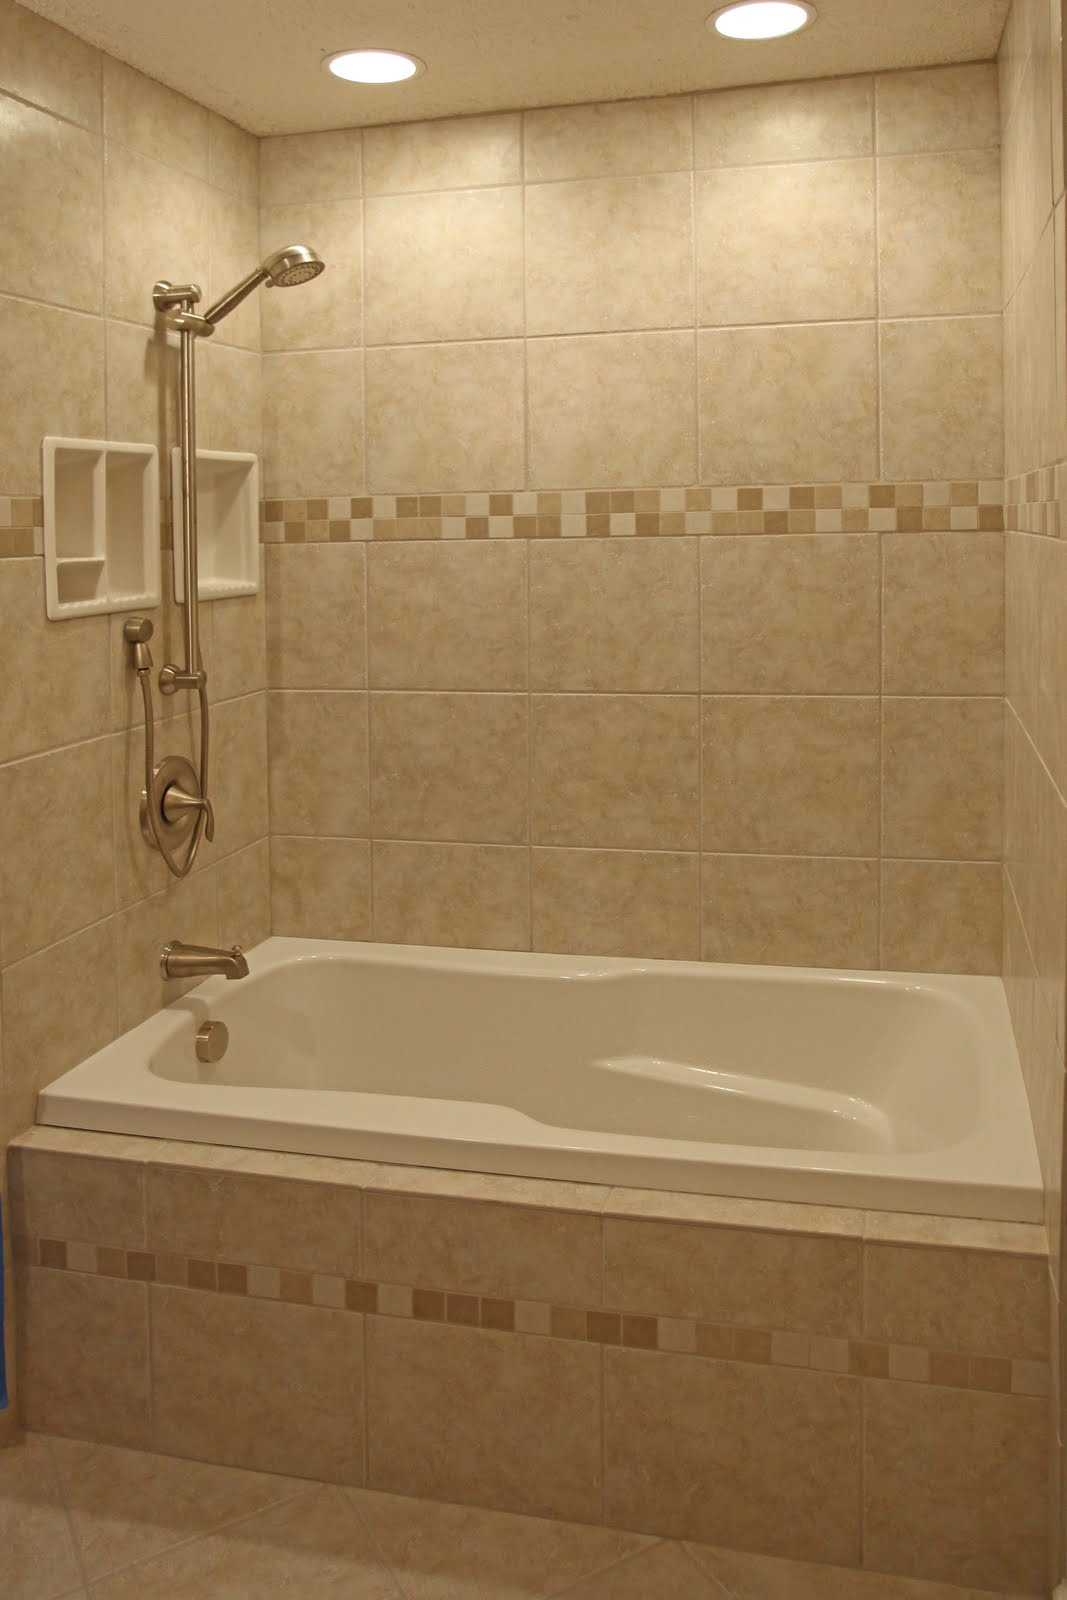 Bathroom remodeling design ideas tile shower niches november 2009 - Bathroom tile designs gallery ...